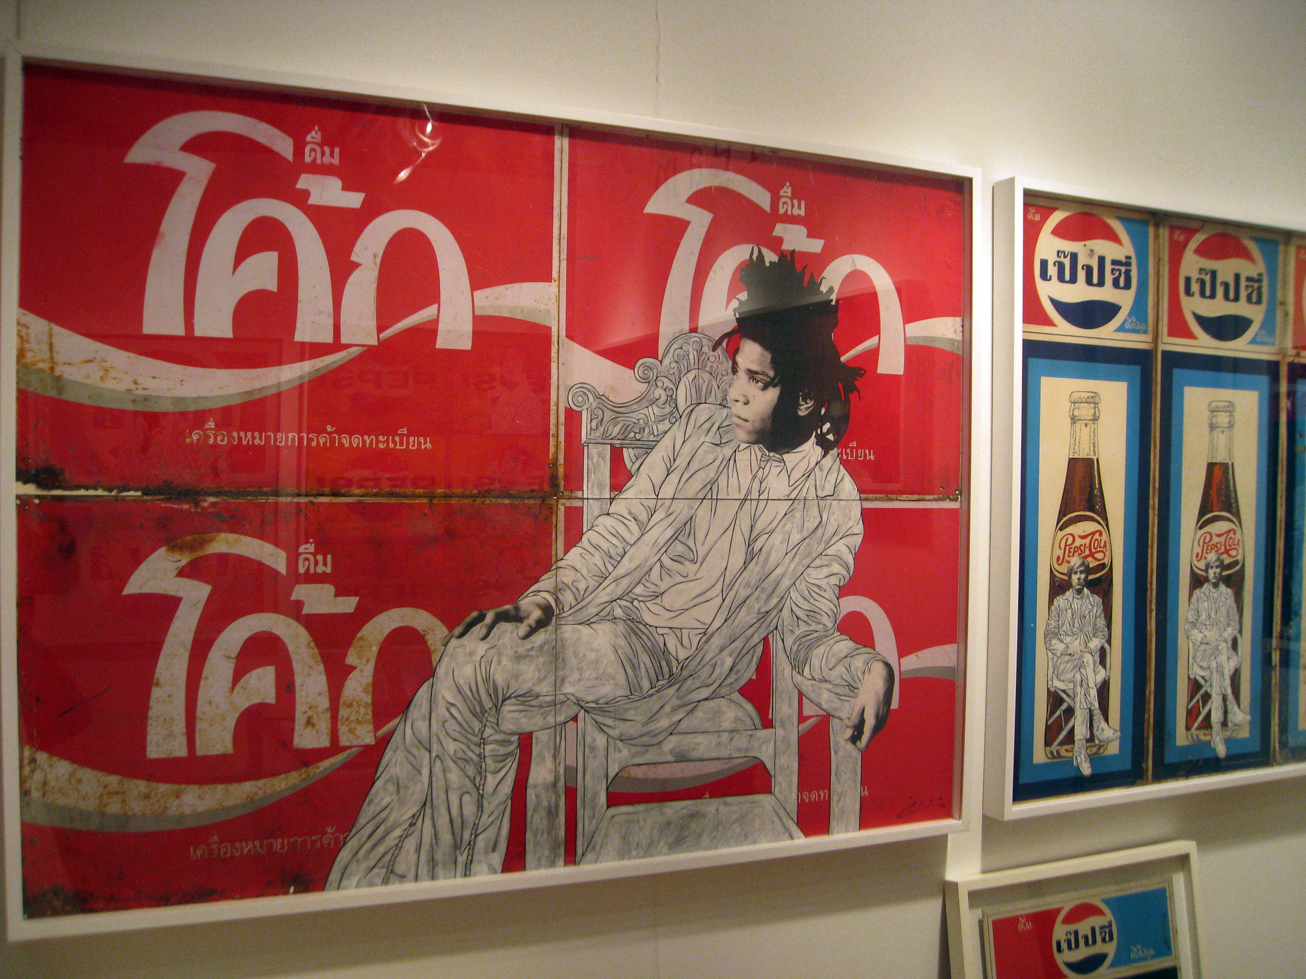 Pakpoom Silaphan Brilliantly Recasts Vintage Ad Signs With